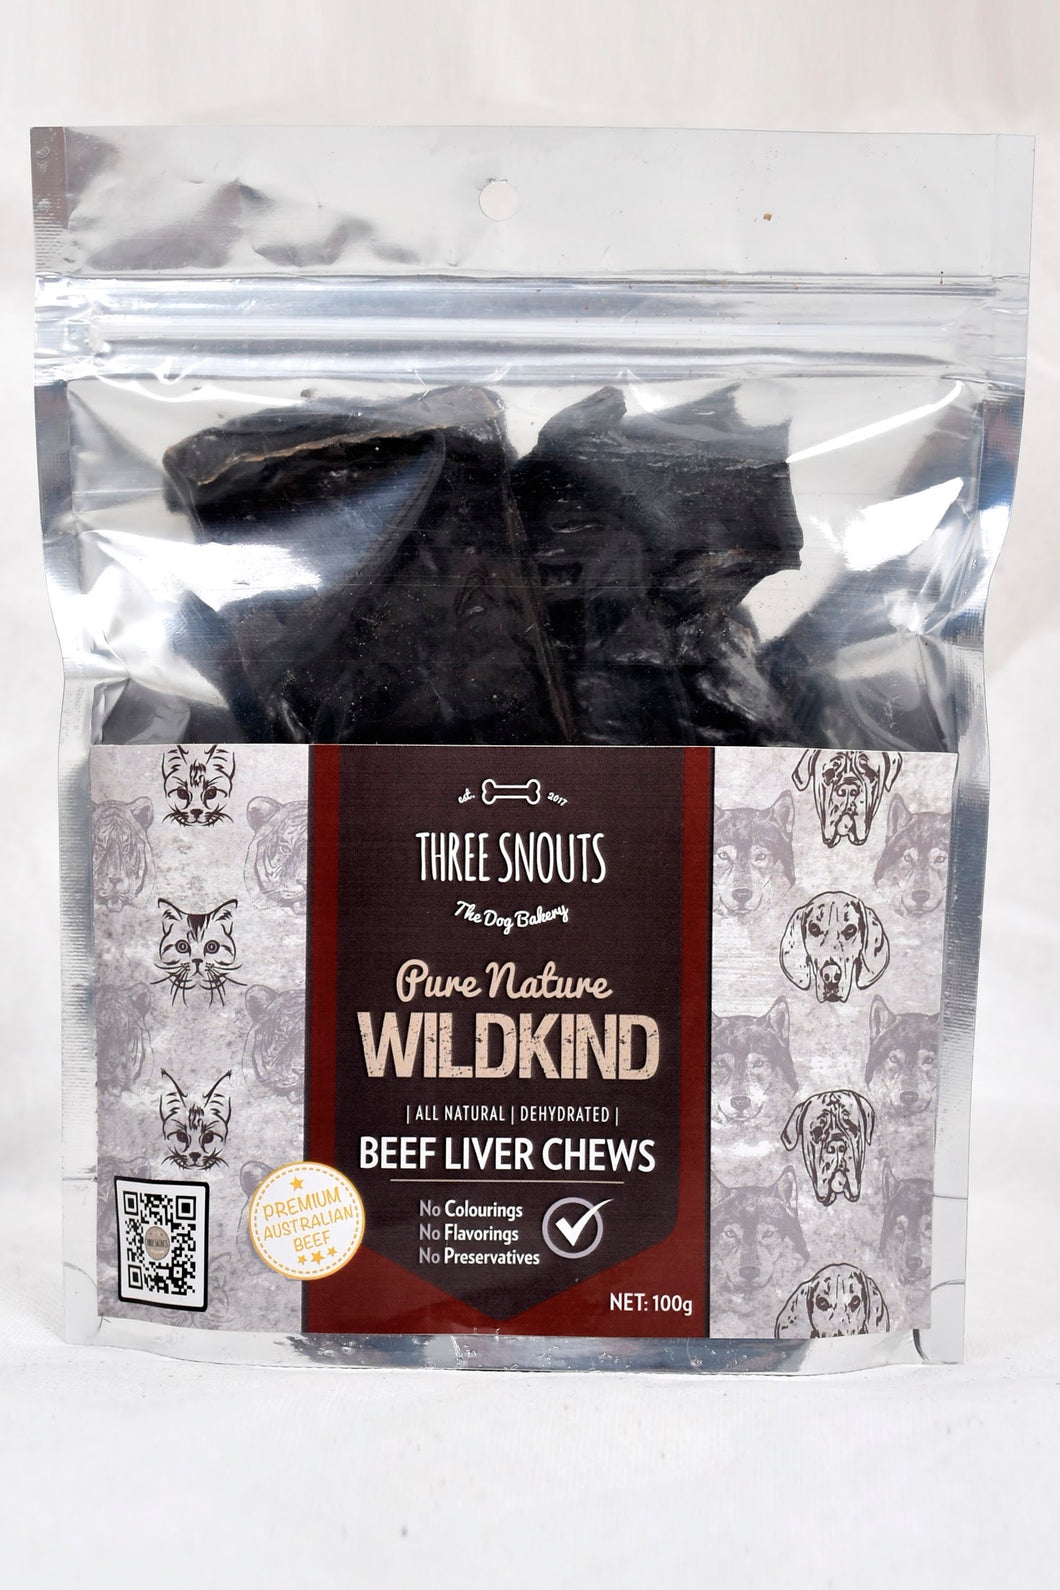 Three Snouts-Pure Nature WILDKIND Beef Liver Chews 100g